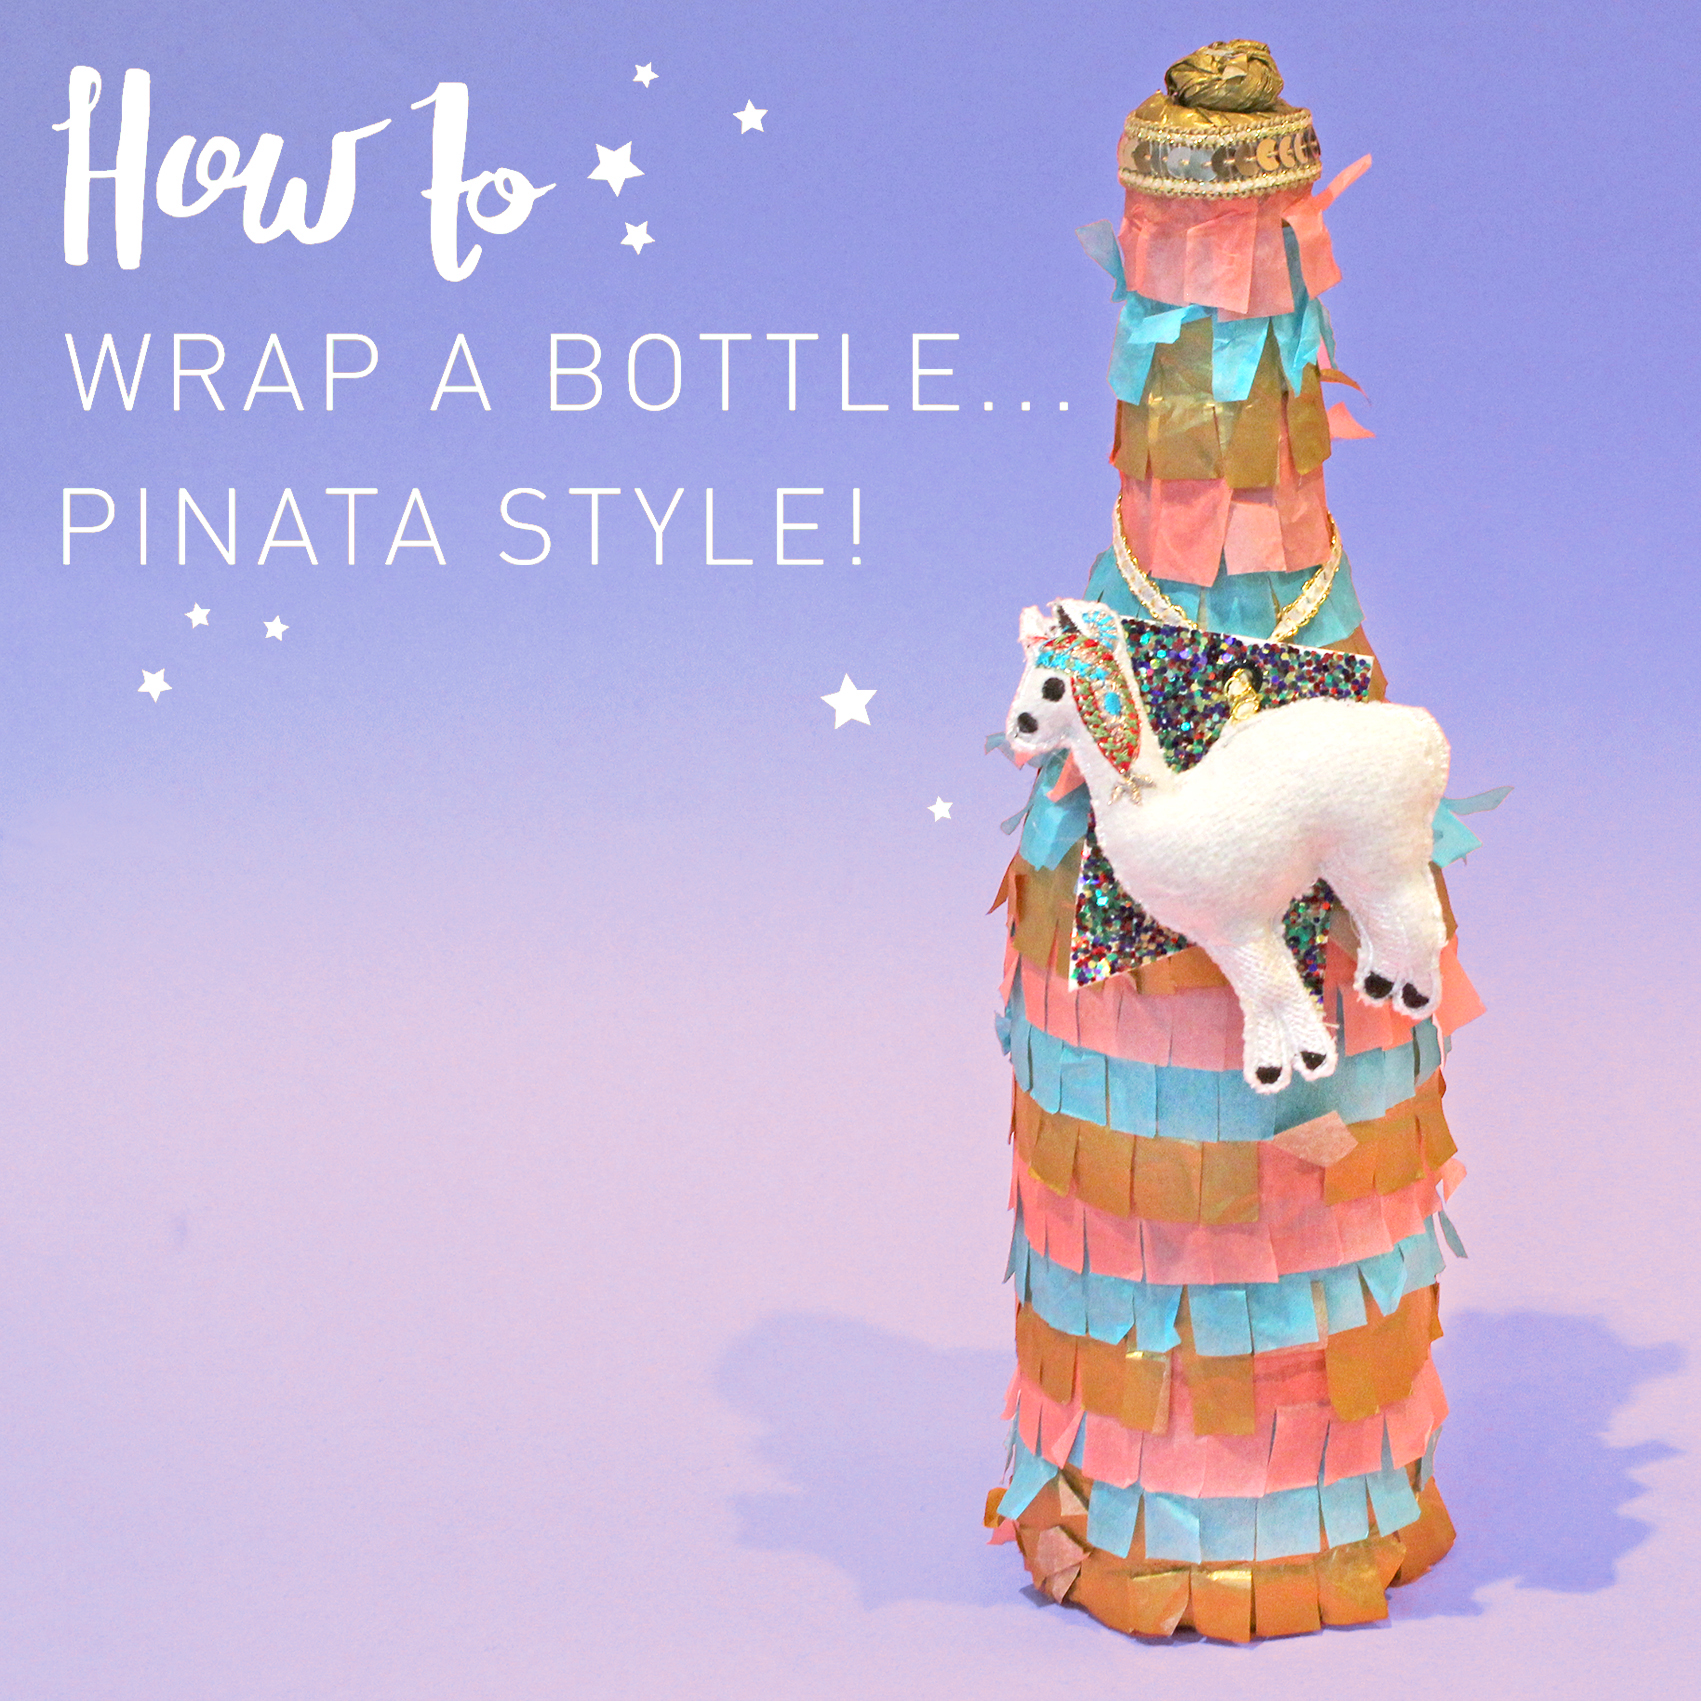 how-to-wrap-a-bottle-pinata-style-featured-image-v3